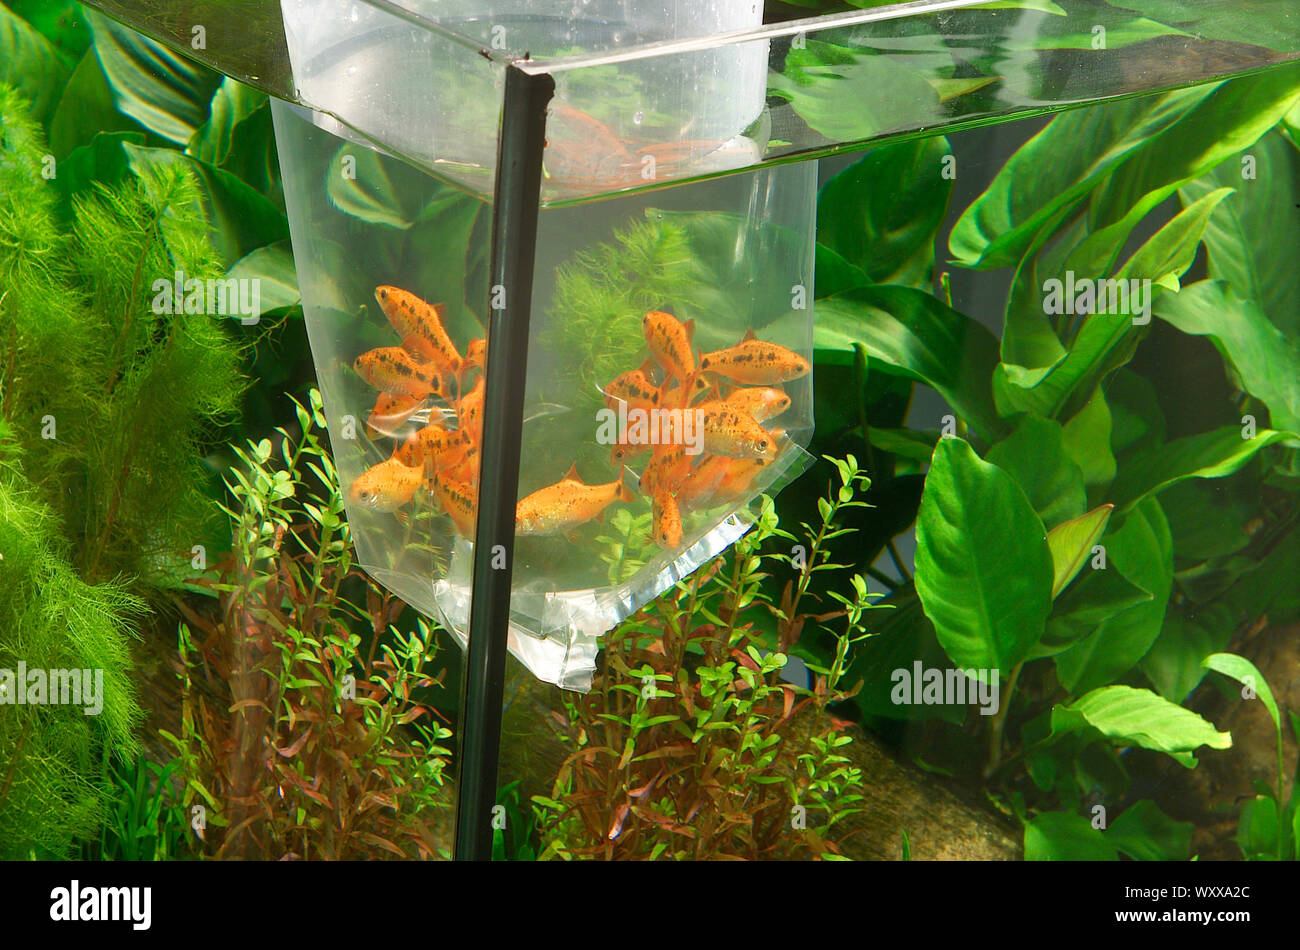 Gold barbs (Barbodes semifasciolatus) waiting to be released in aquarium Stock Photo